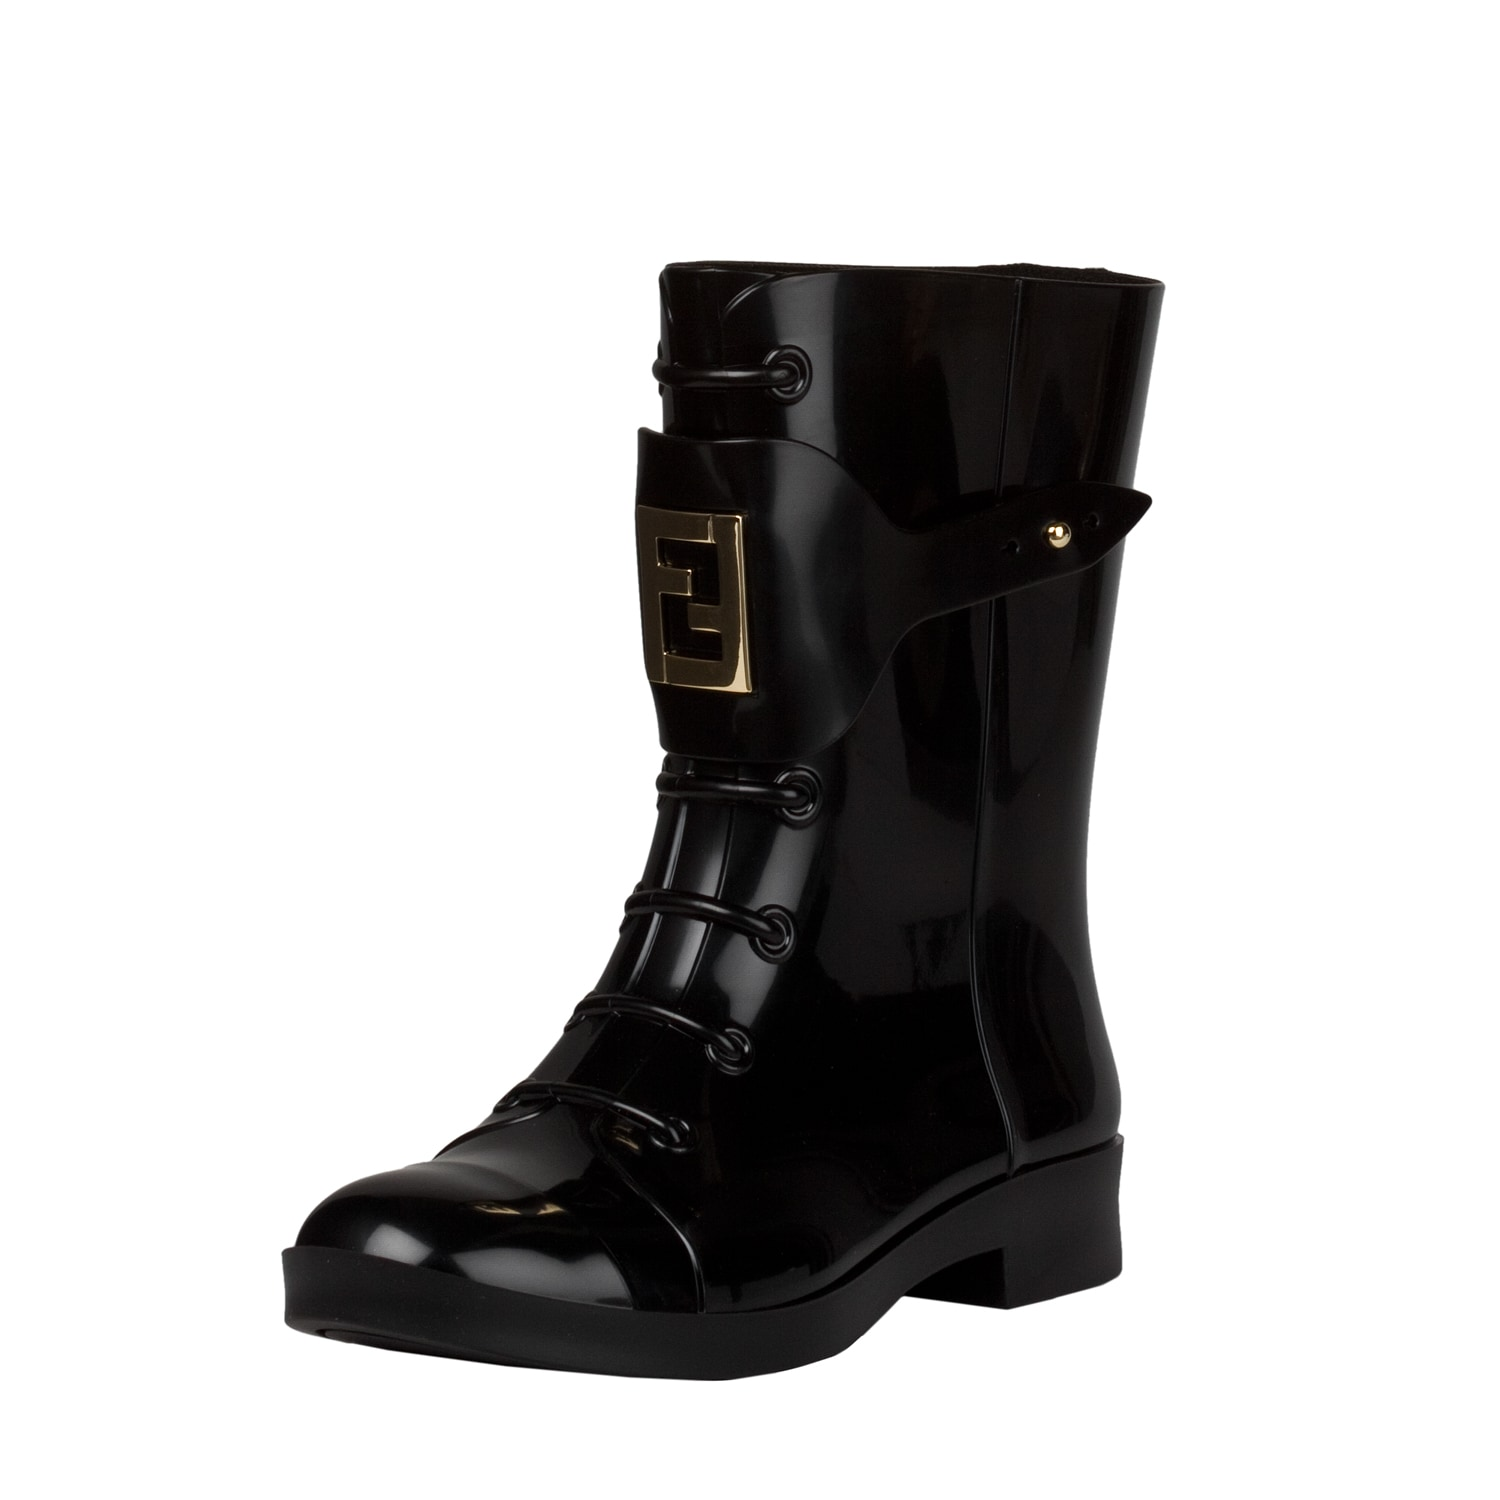 Fendi Women's Black Lace-up Rubber Short Rain Boots